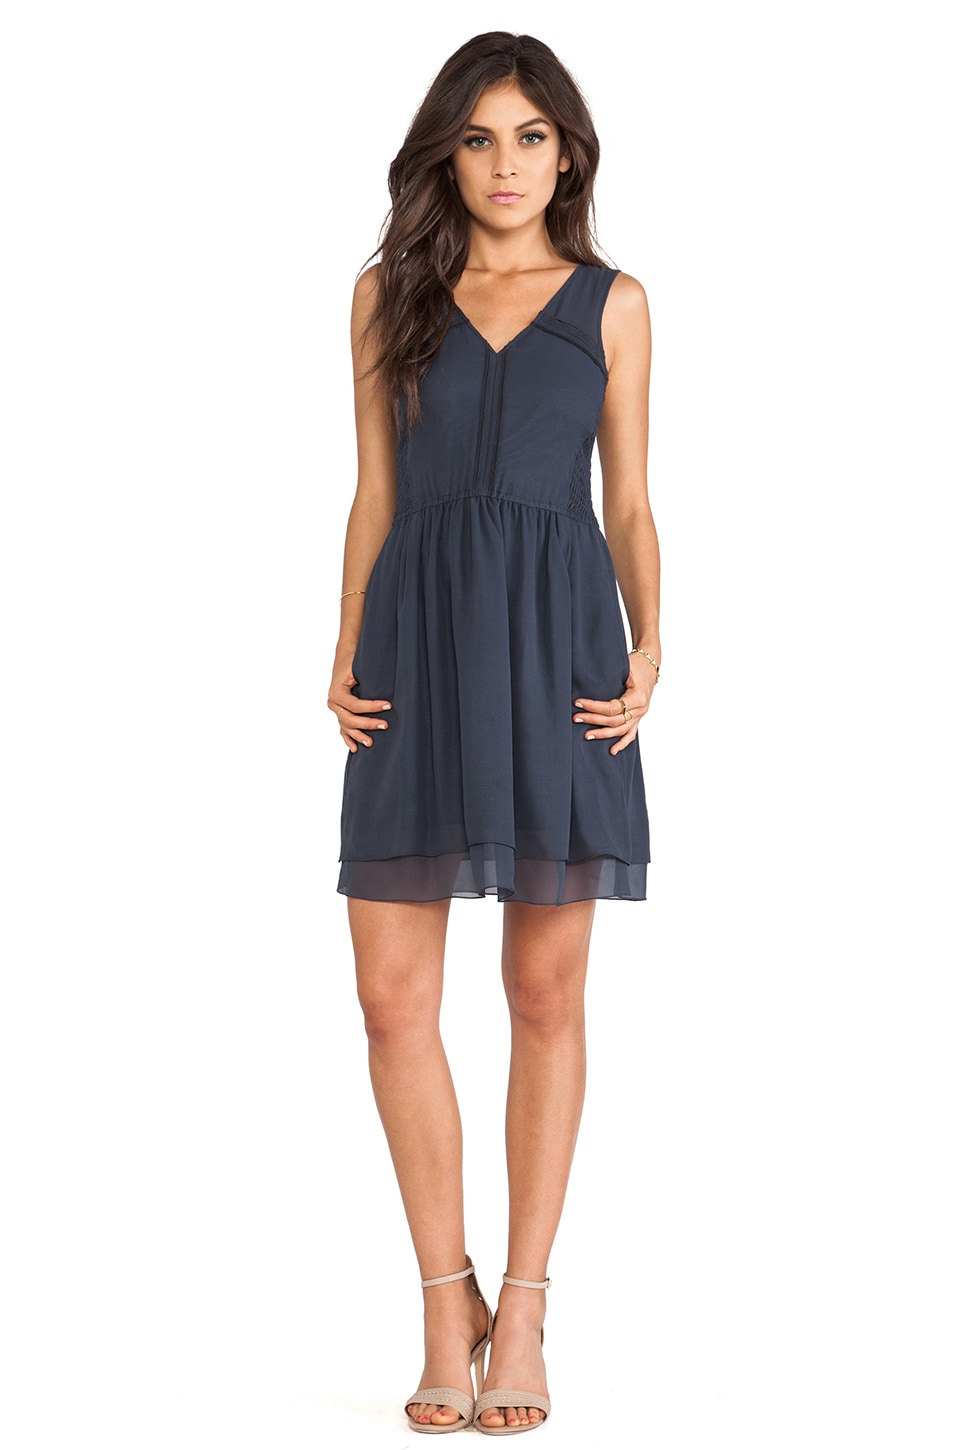 Marc by Marc Jacobs Crystal Textured Silk Dress in India Blue